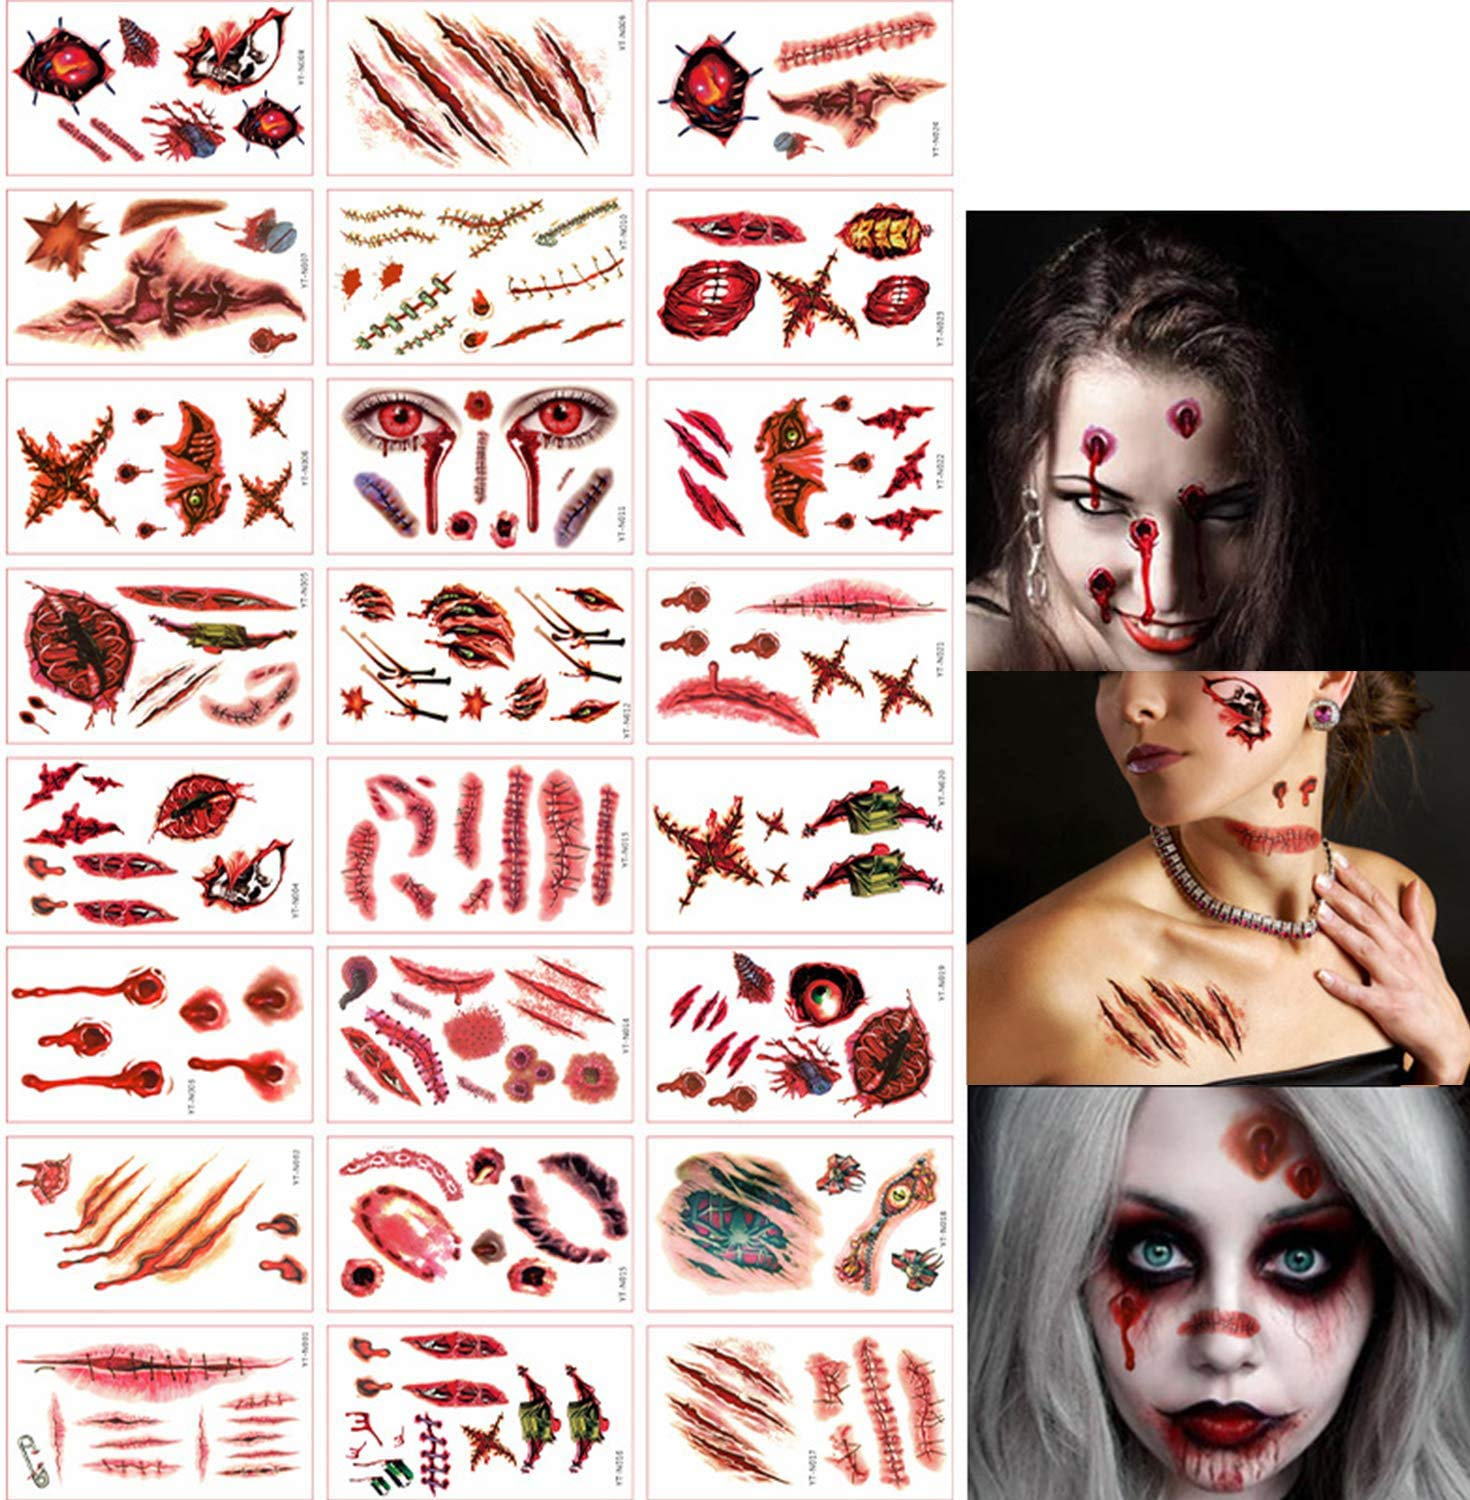 300+ Halloween Scar Temporary Tattoos - Max 52% OFF Zombie Sup Max 69% OFF Party Vampire